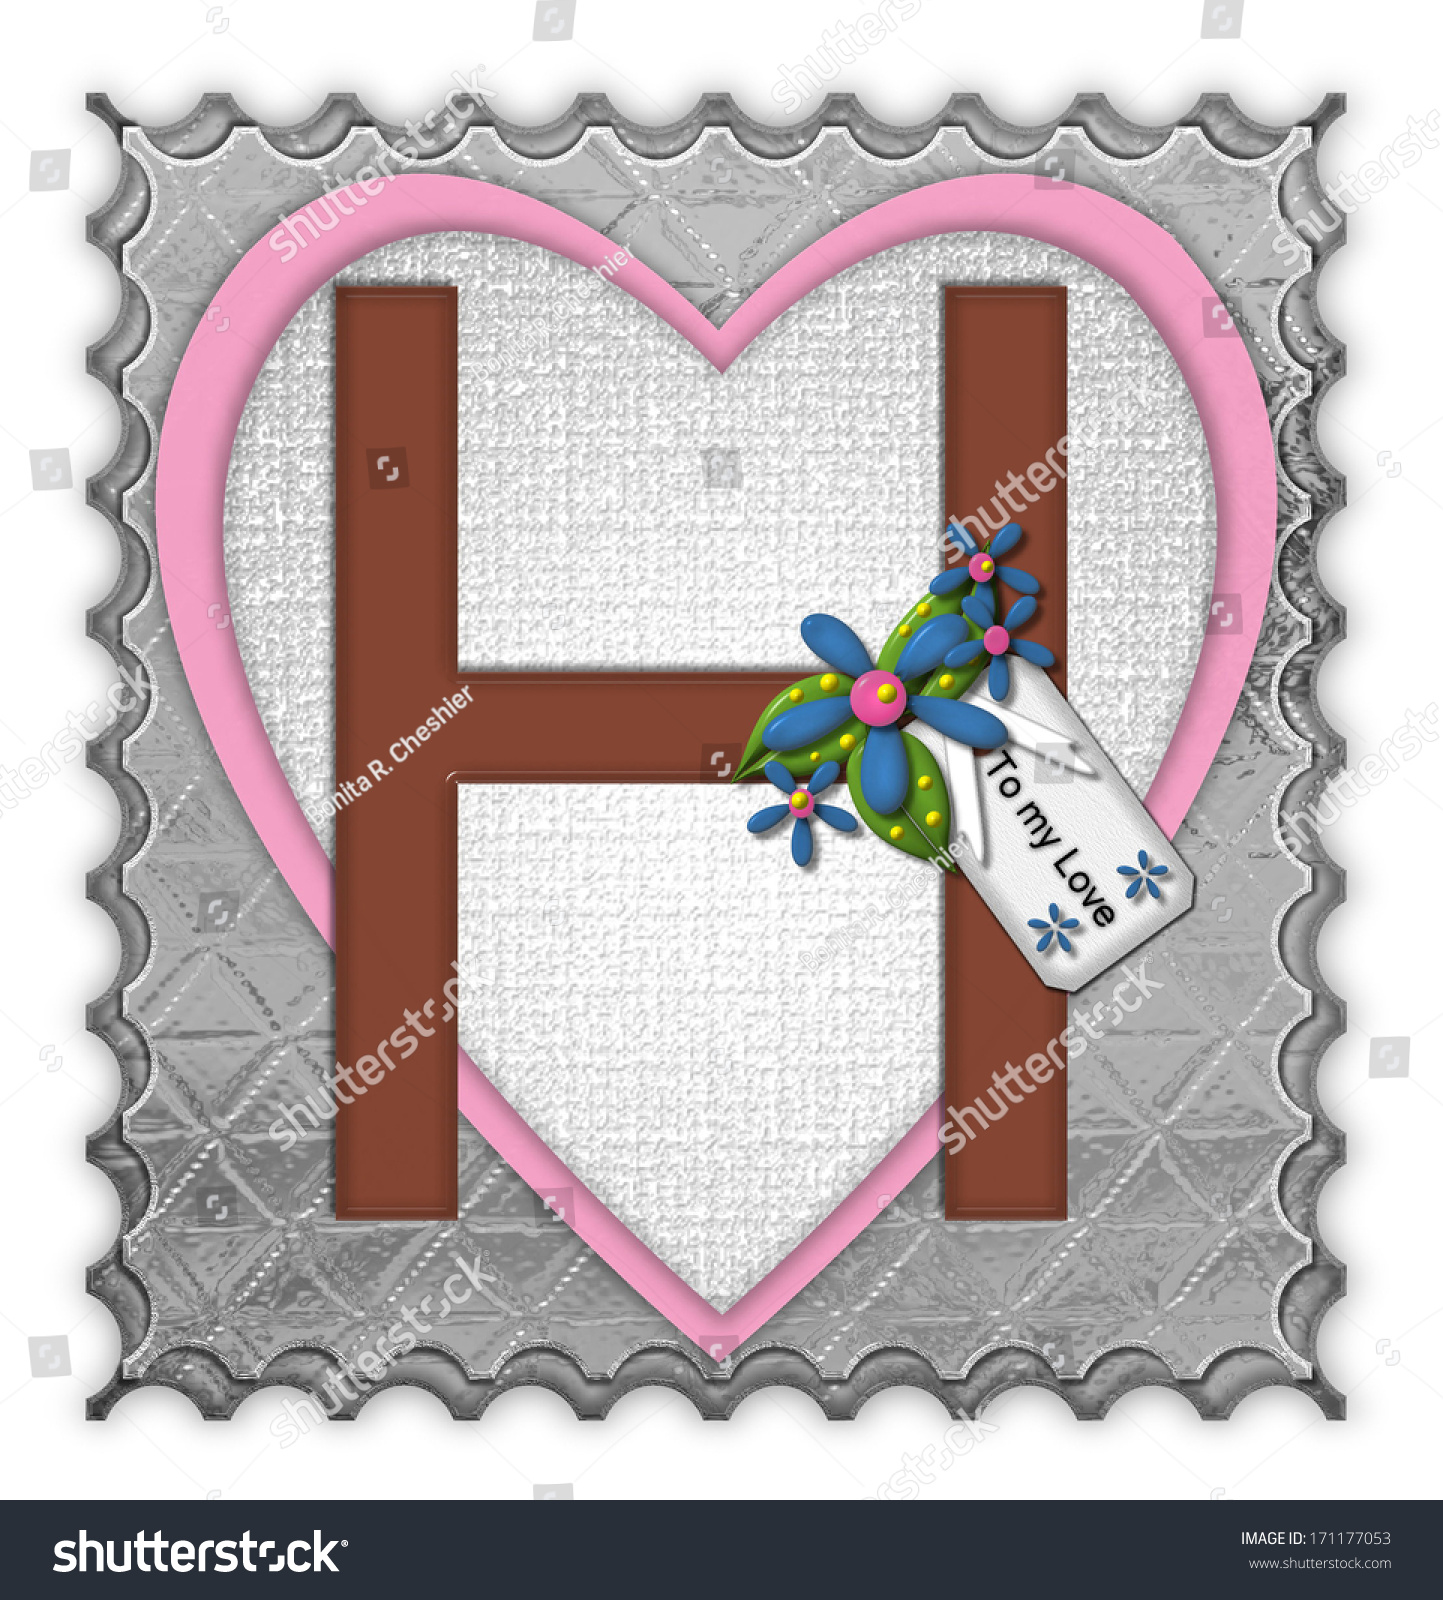 H tag background image - The Letter H In The Alphabet Set Chocolate Box Is A Chocolate